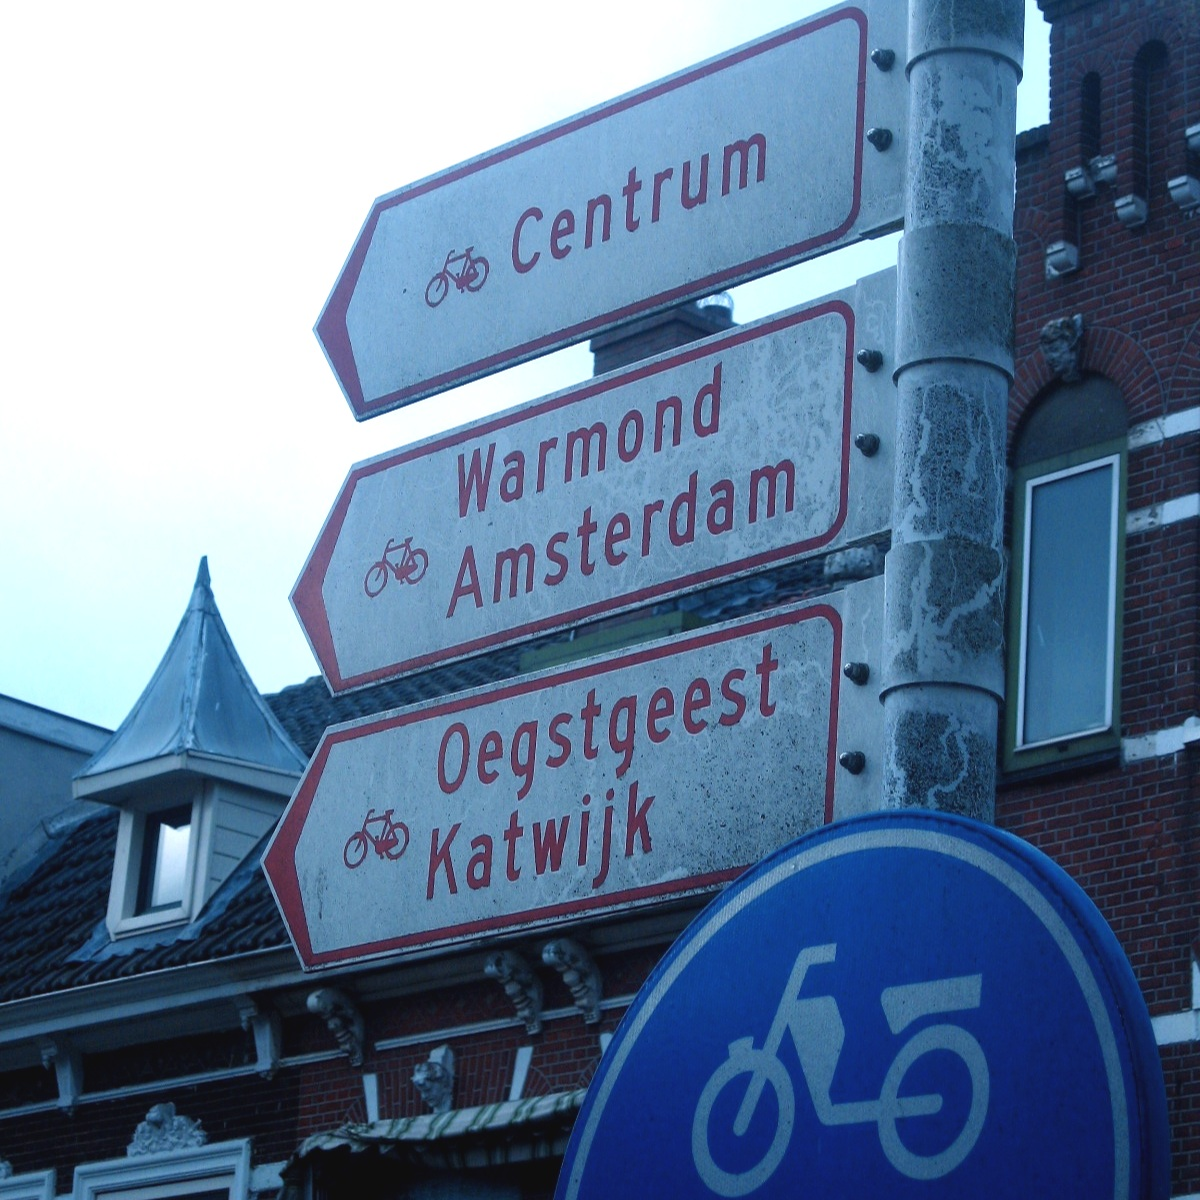 OUr first sign for Amsterdam appeared long after we'd crossed the 100-mile threshold.